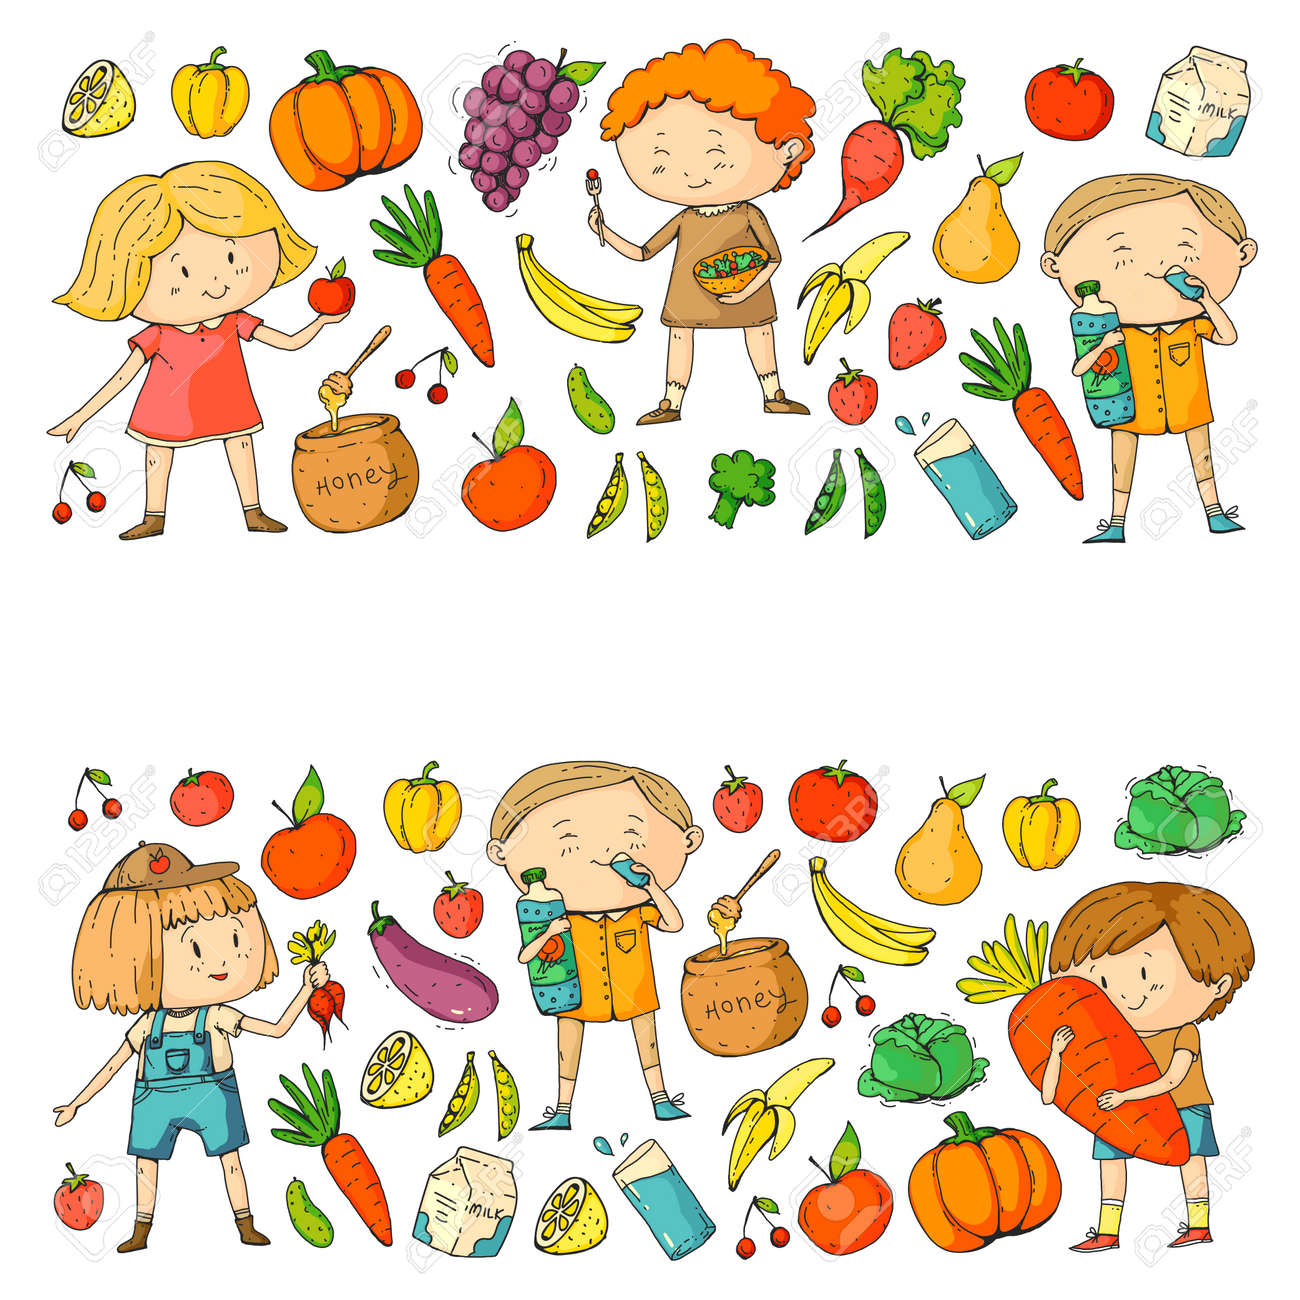 Children School And Kindergarten Healthy Food And Drinks Kids Royalty Free Cliparts Vectors And Stock Illustration Image 94671608